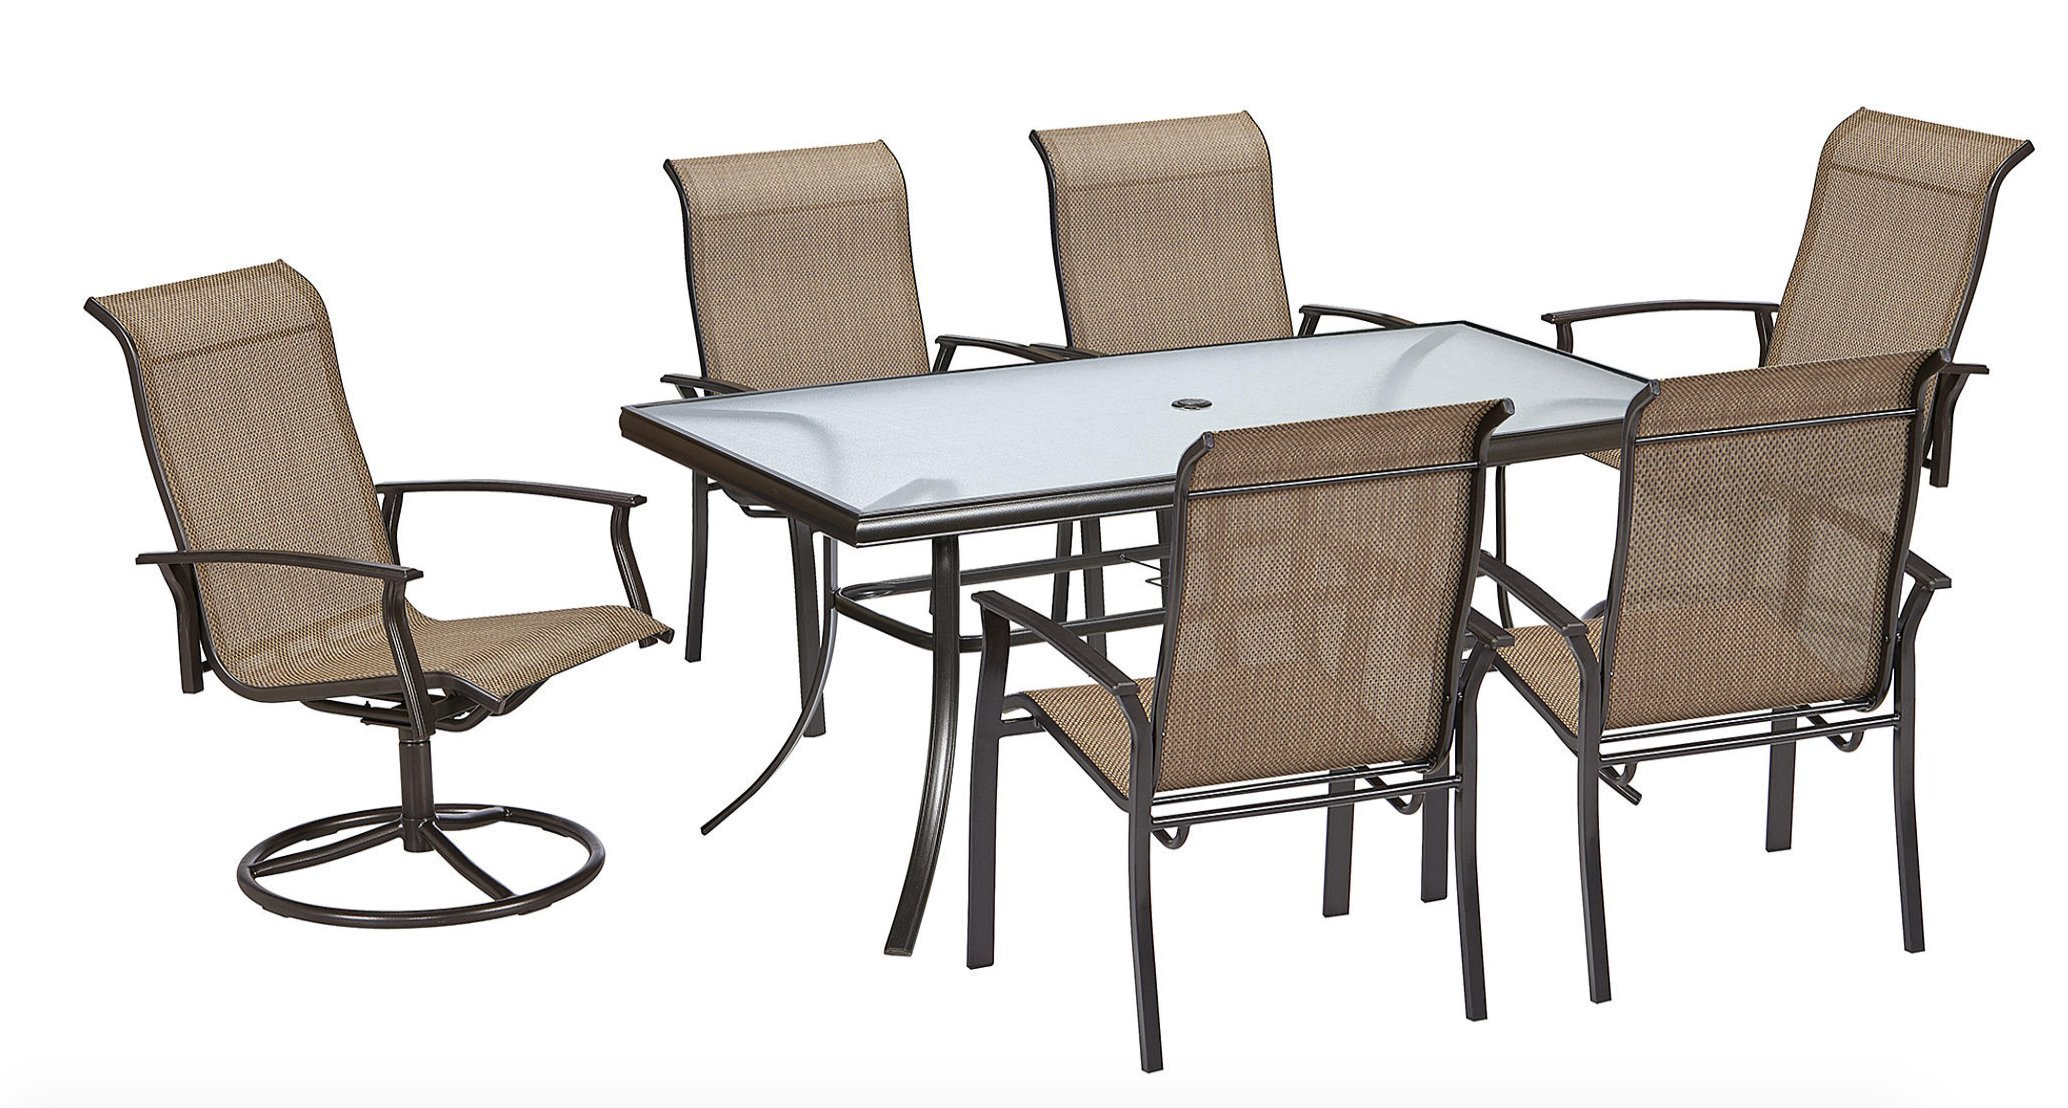 Cheap Dining Set Philippines For Sale, find Dining Set Philippines ...